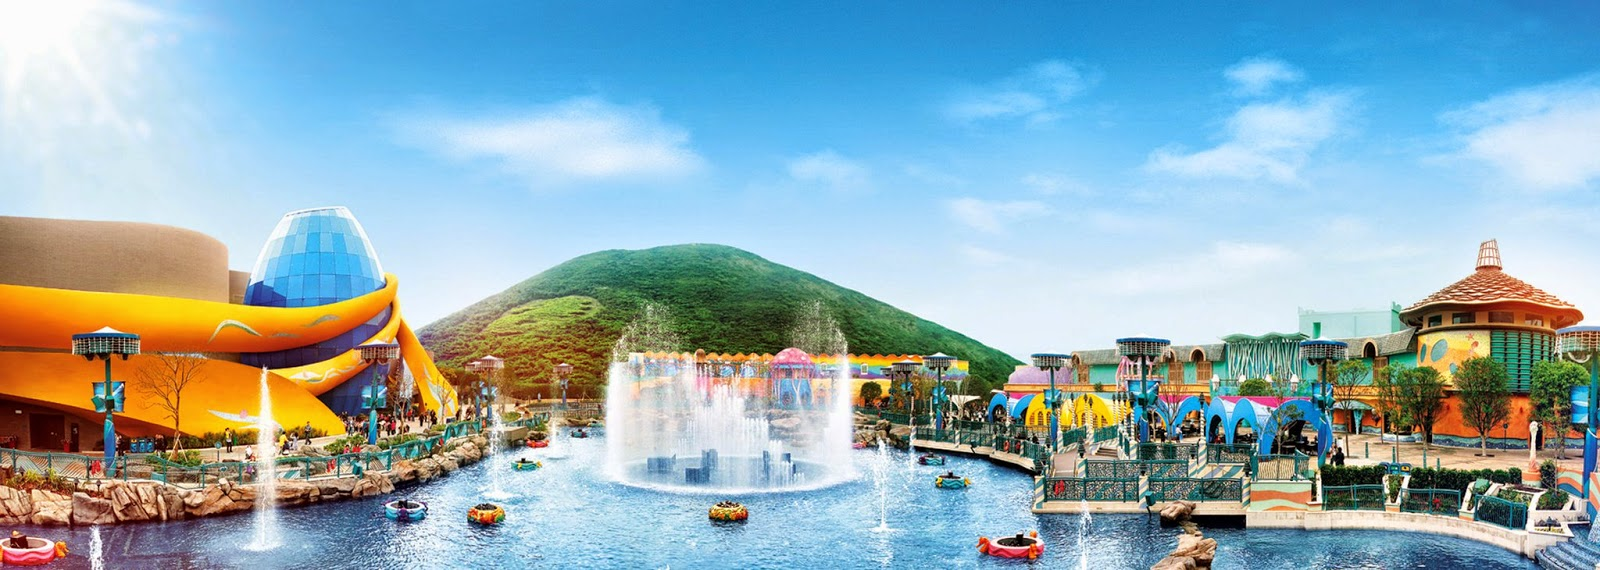 amusement parks 3 essay Address the following questions in your description: o which type of attraction or gaming do you enjoy the most—amusement or theme parks, museums, theaters, national parks, city-based megacasinos, tribal casinos, or racetracks explain your choice.